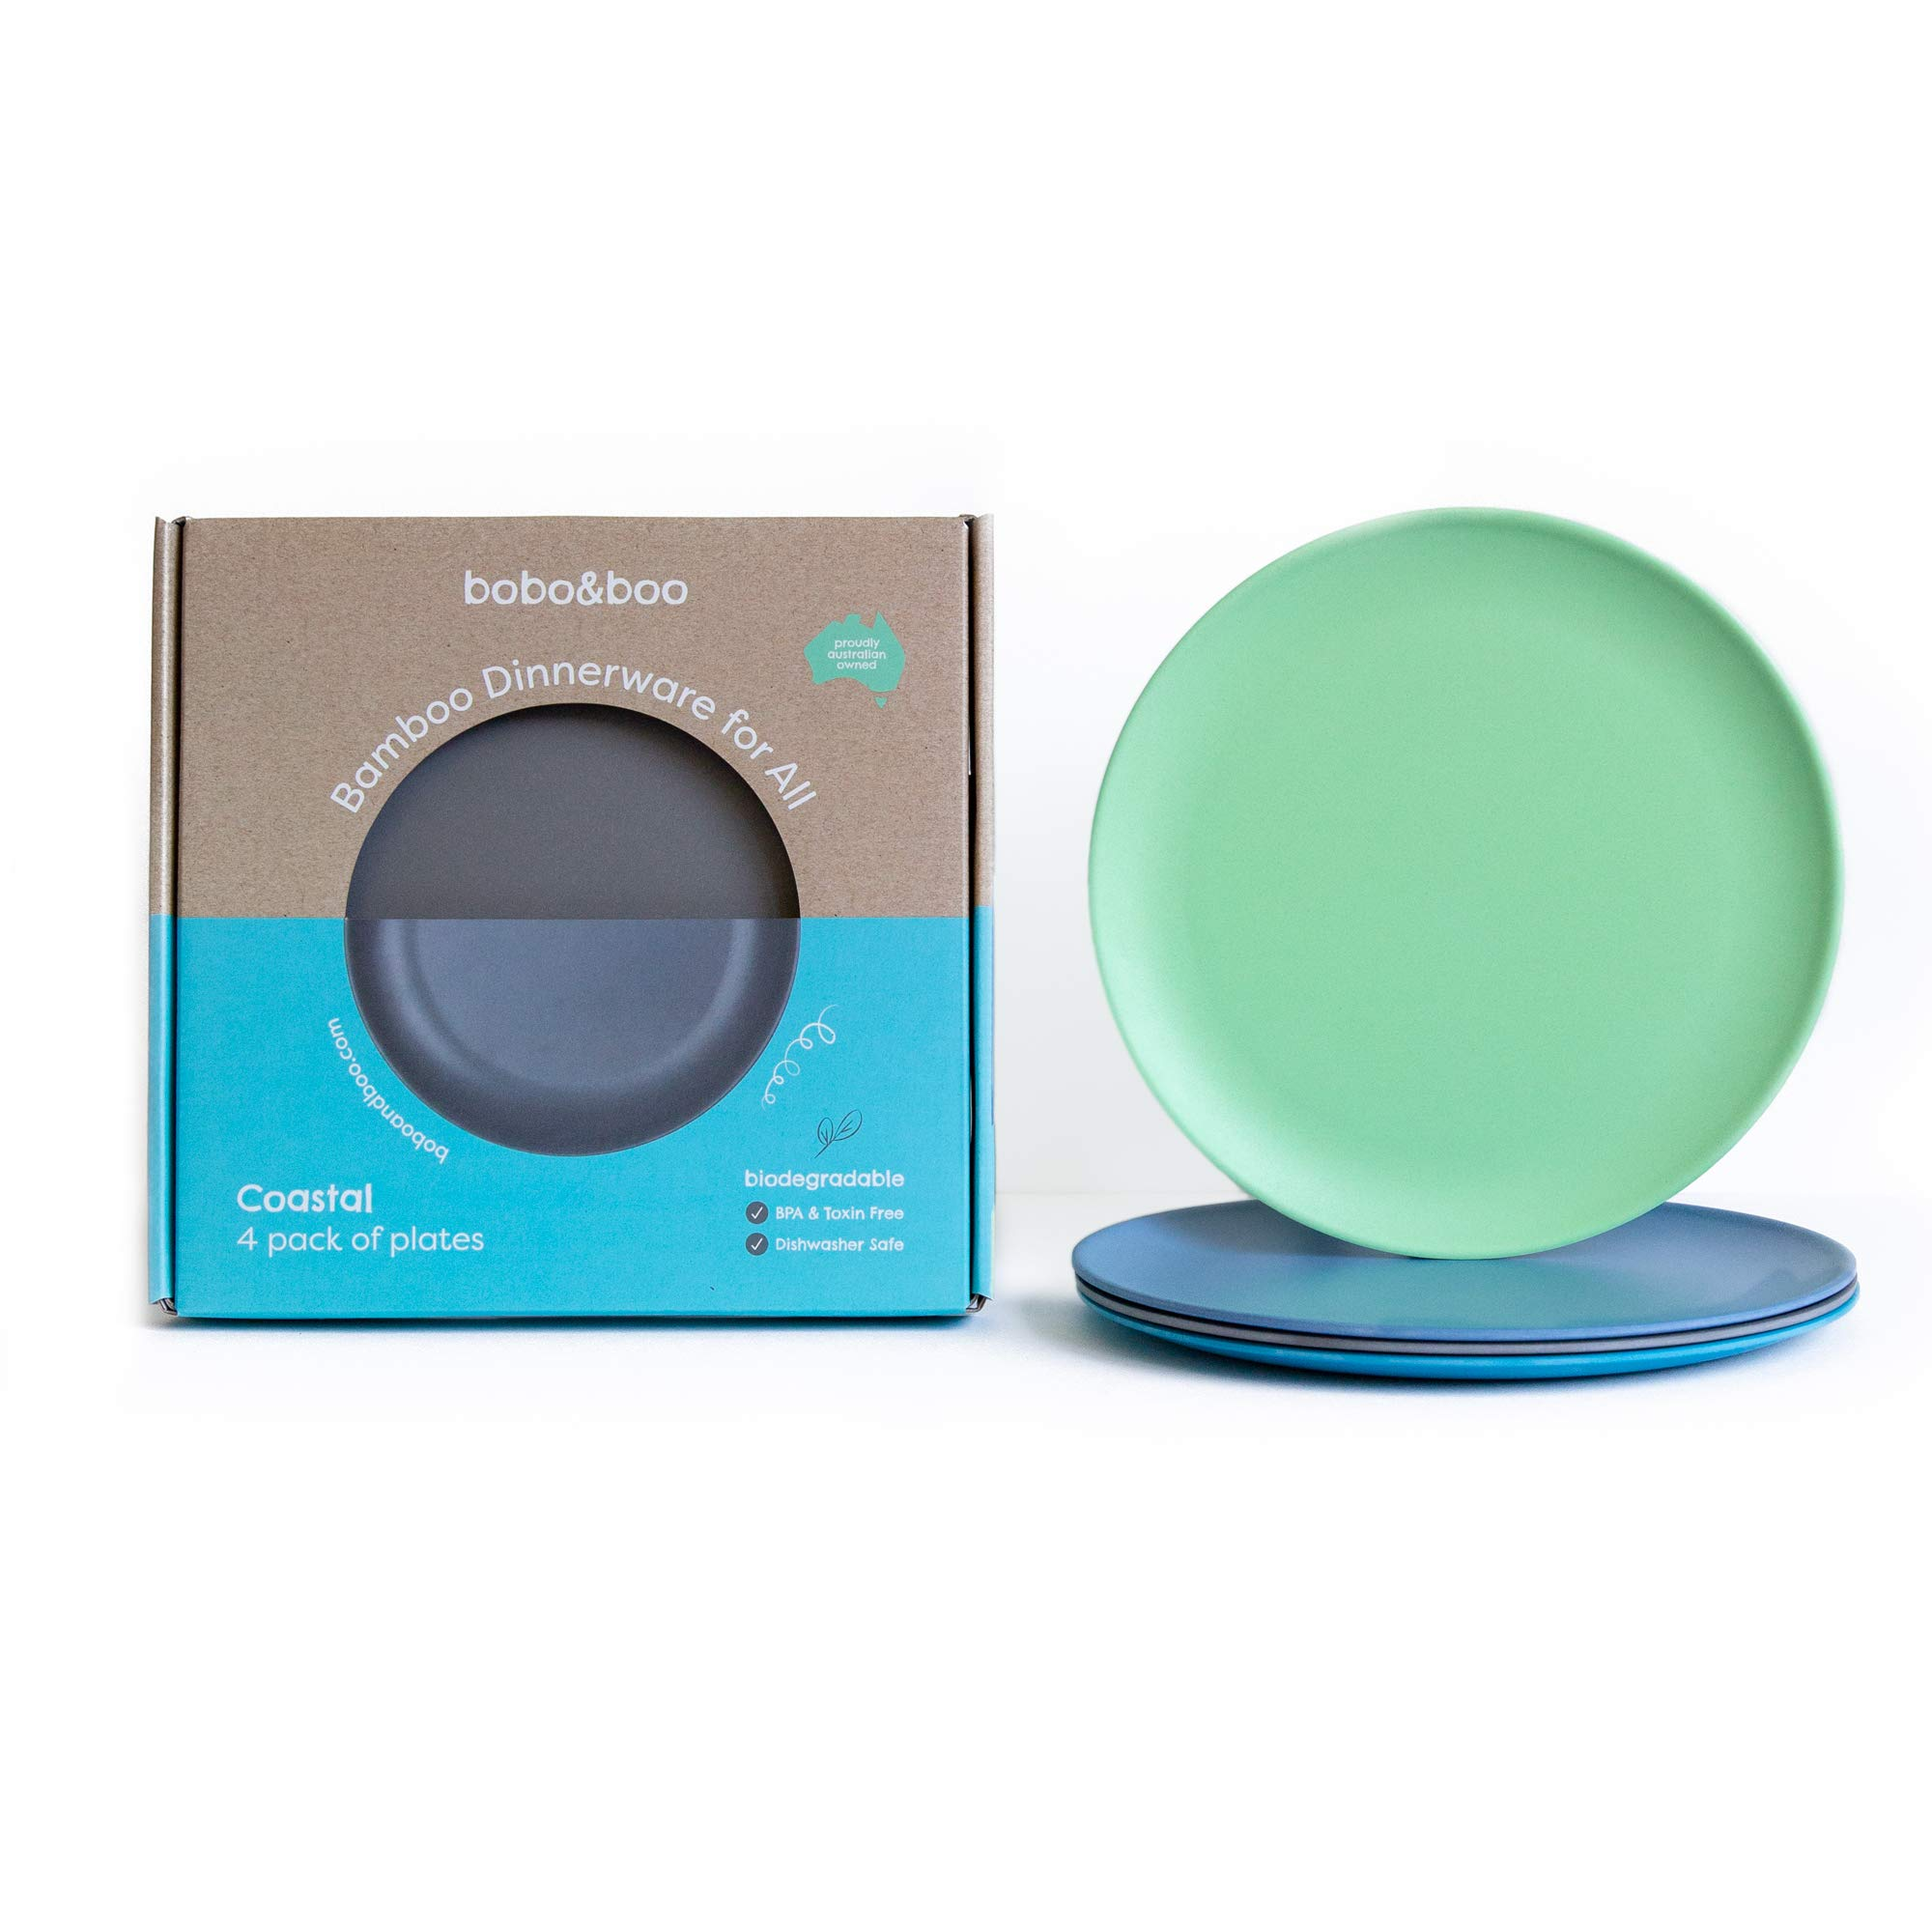 BOBO&BOO Adult-Sized (10inch) Eco Friendly Bamboo Plates for Adults & Kids | 4 Set | Durable Bamboo Dinnerware Set for Home, Picnic & Party Time - BPA Free - Dishwasher Safe - FDA Approved - COASTAL by Bobo&boo